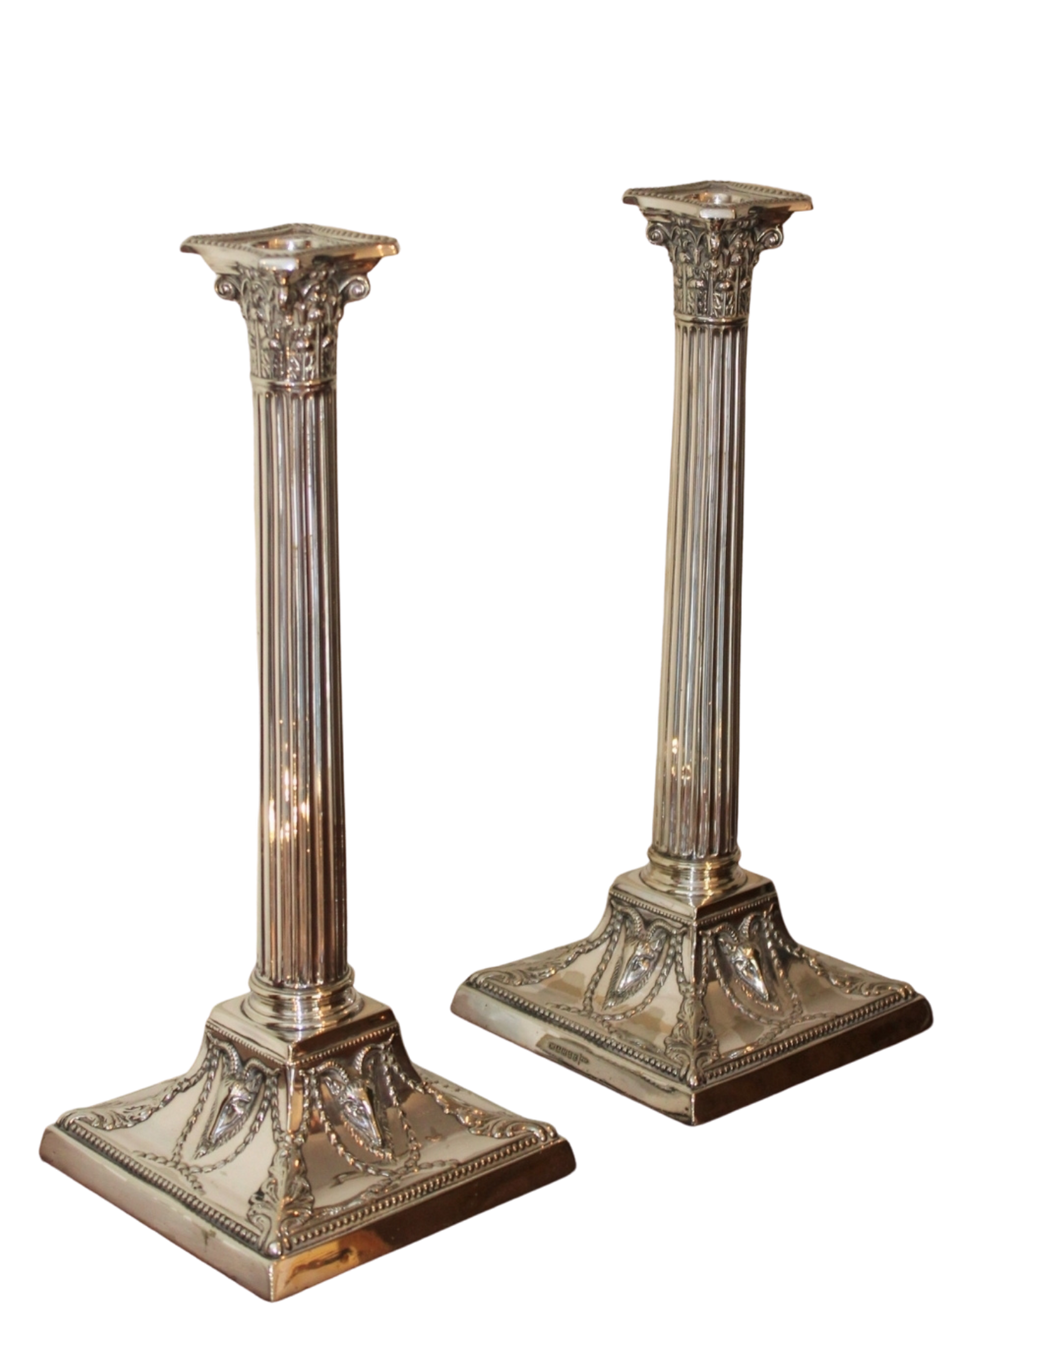 Superb Pair of Fine Victorian Silver-plated Candlesticks crafted by Walker and Hall of Sheffield, England, circa 1893.